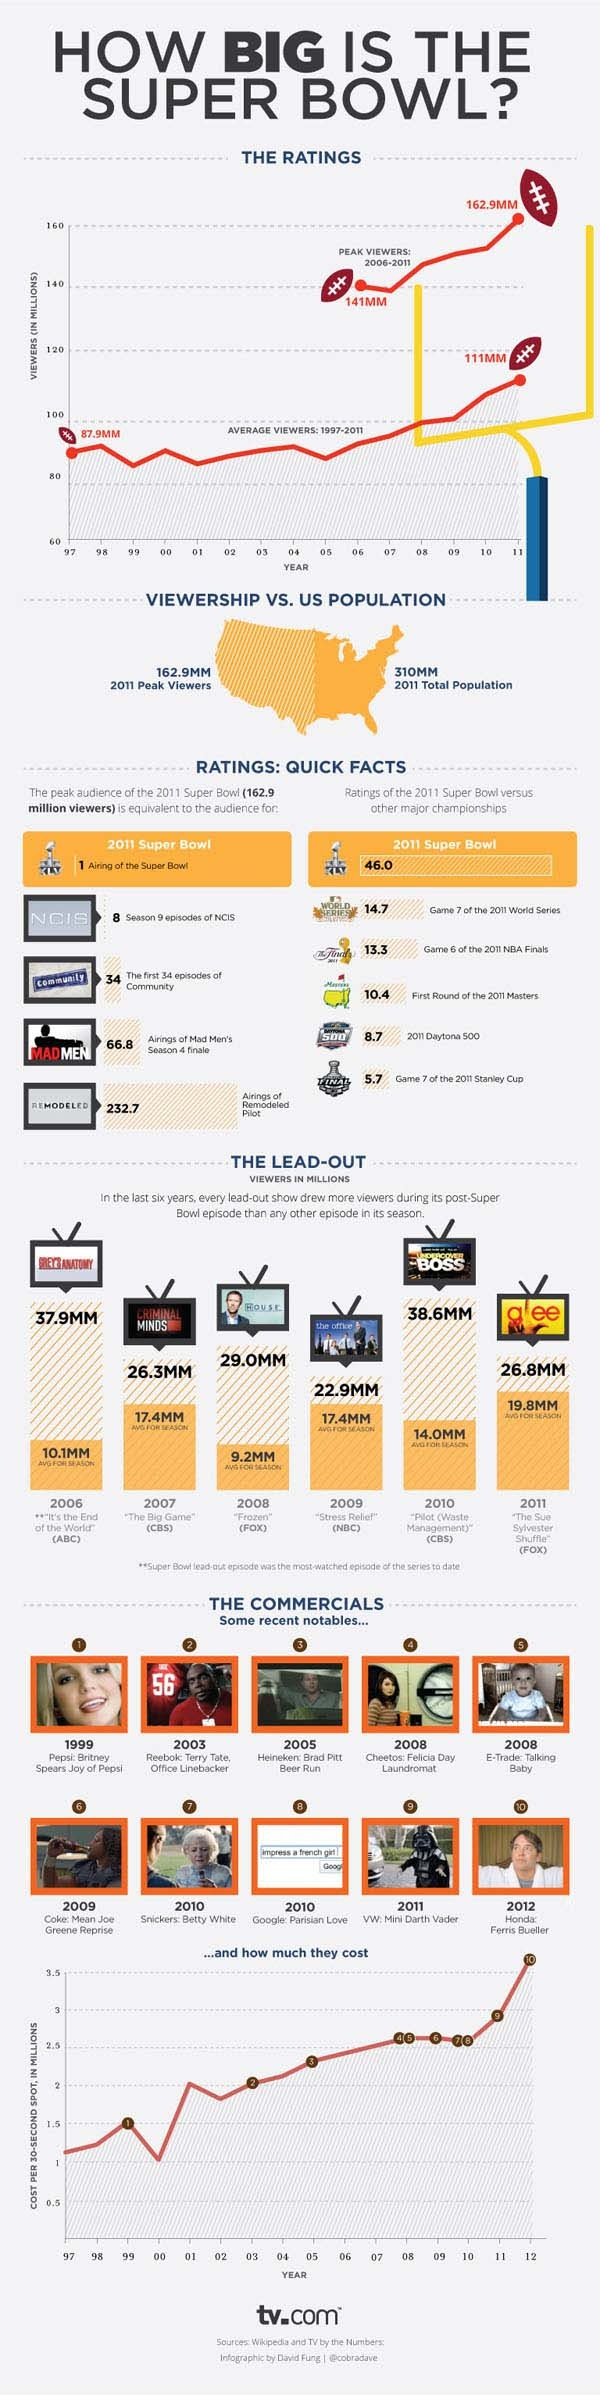 Just some awesome statistics for the Super Bowl fans!